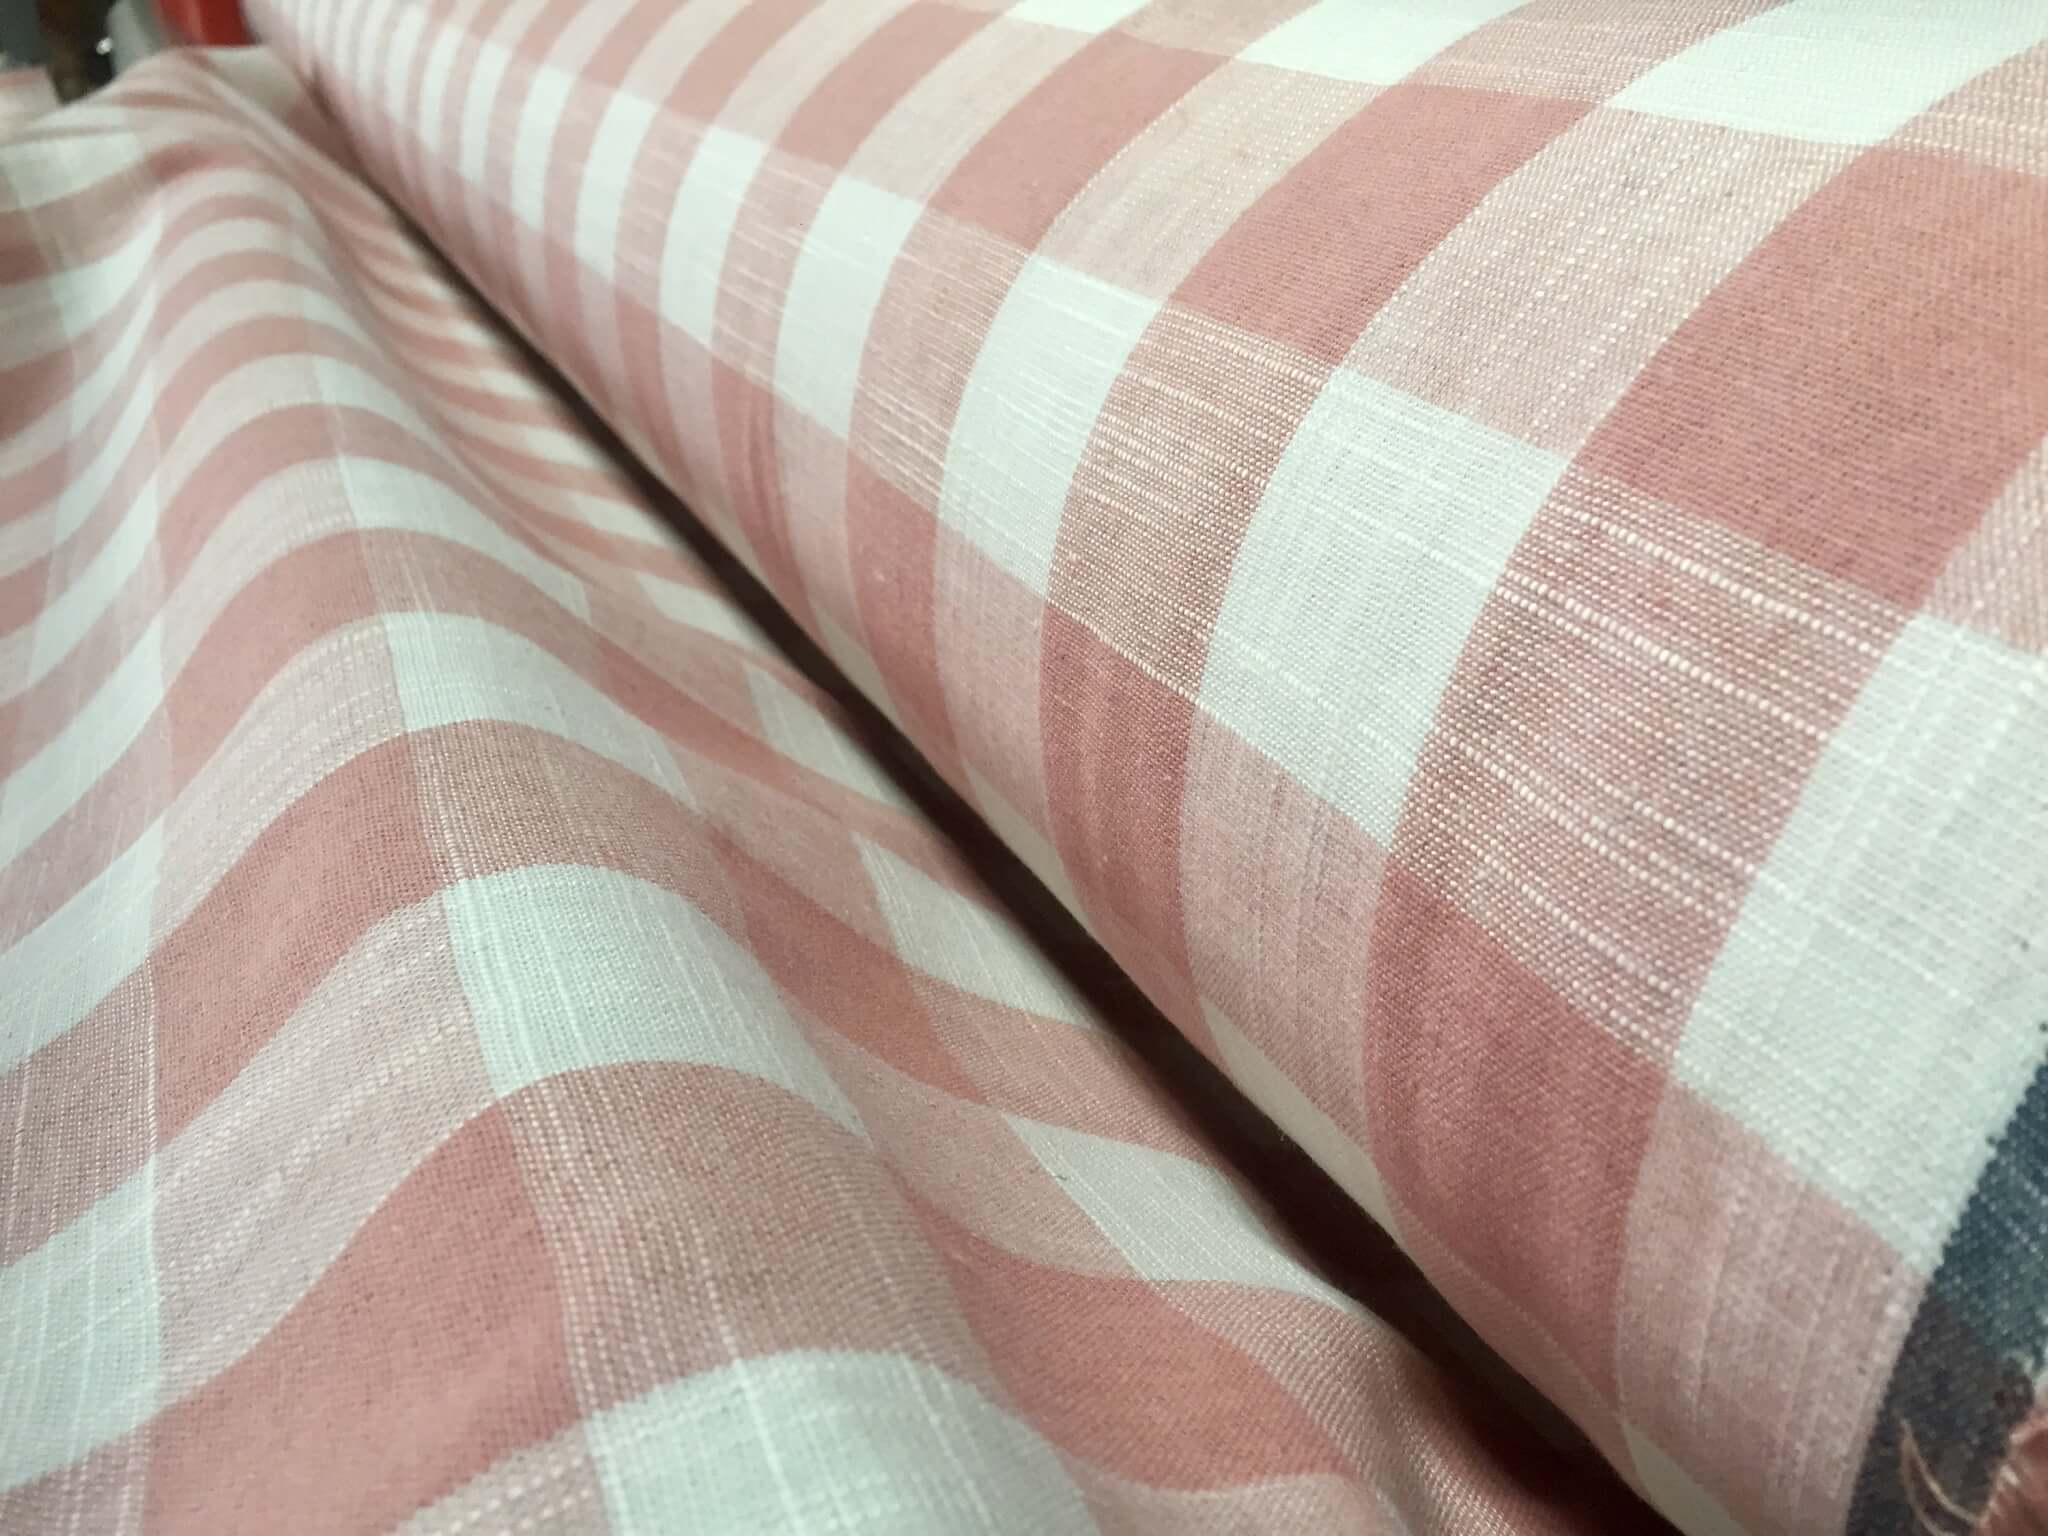 gingham-linen-checked-linen-fabric-plaid-material-buffalo-check-cotton-yarn-dressmaking-curtains-curtains-140cm-wide-pink-white-checks-5d4d9fc71.jpg